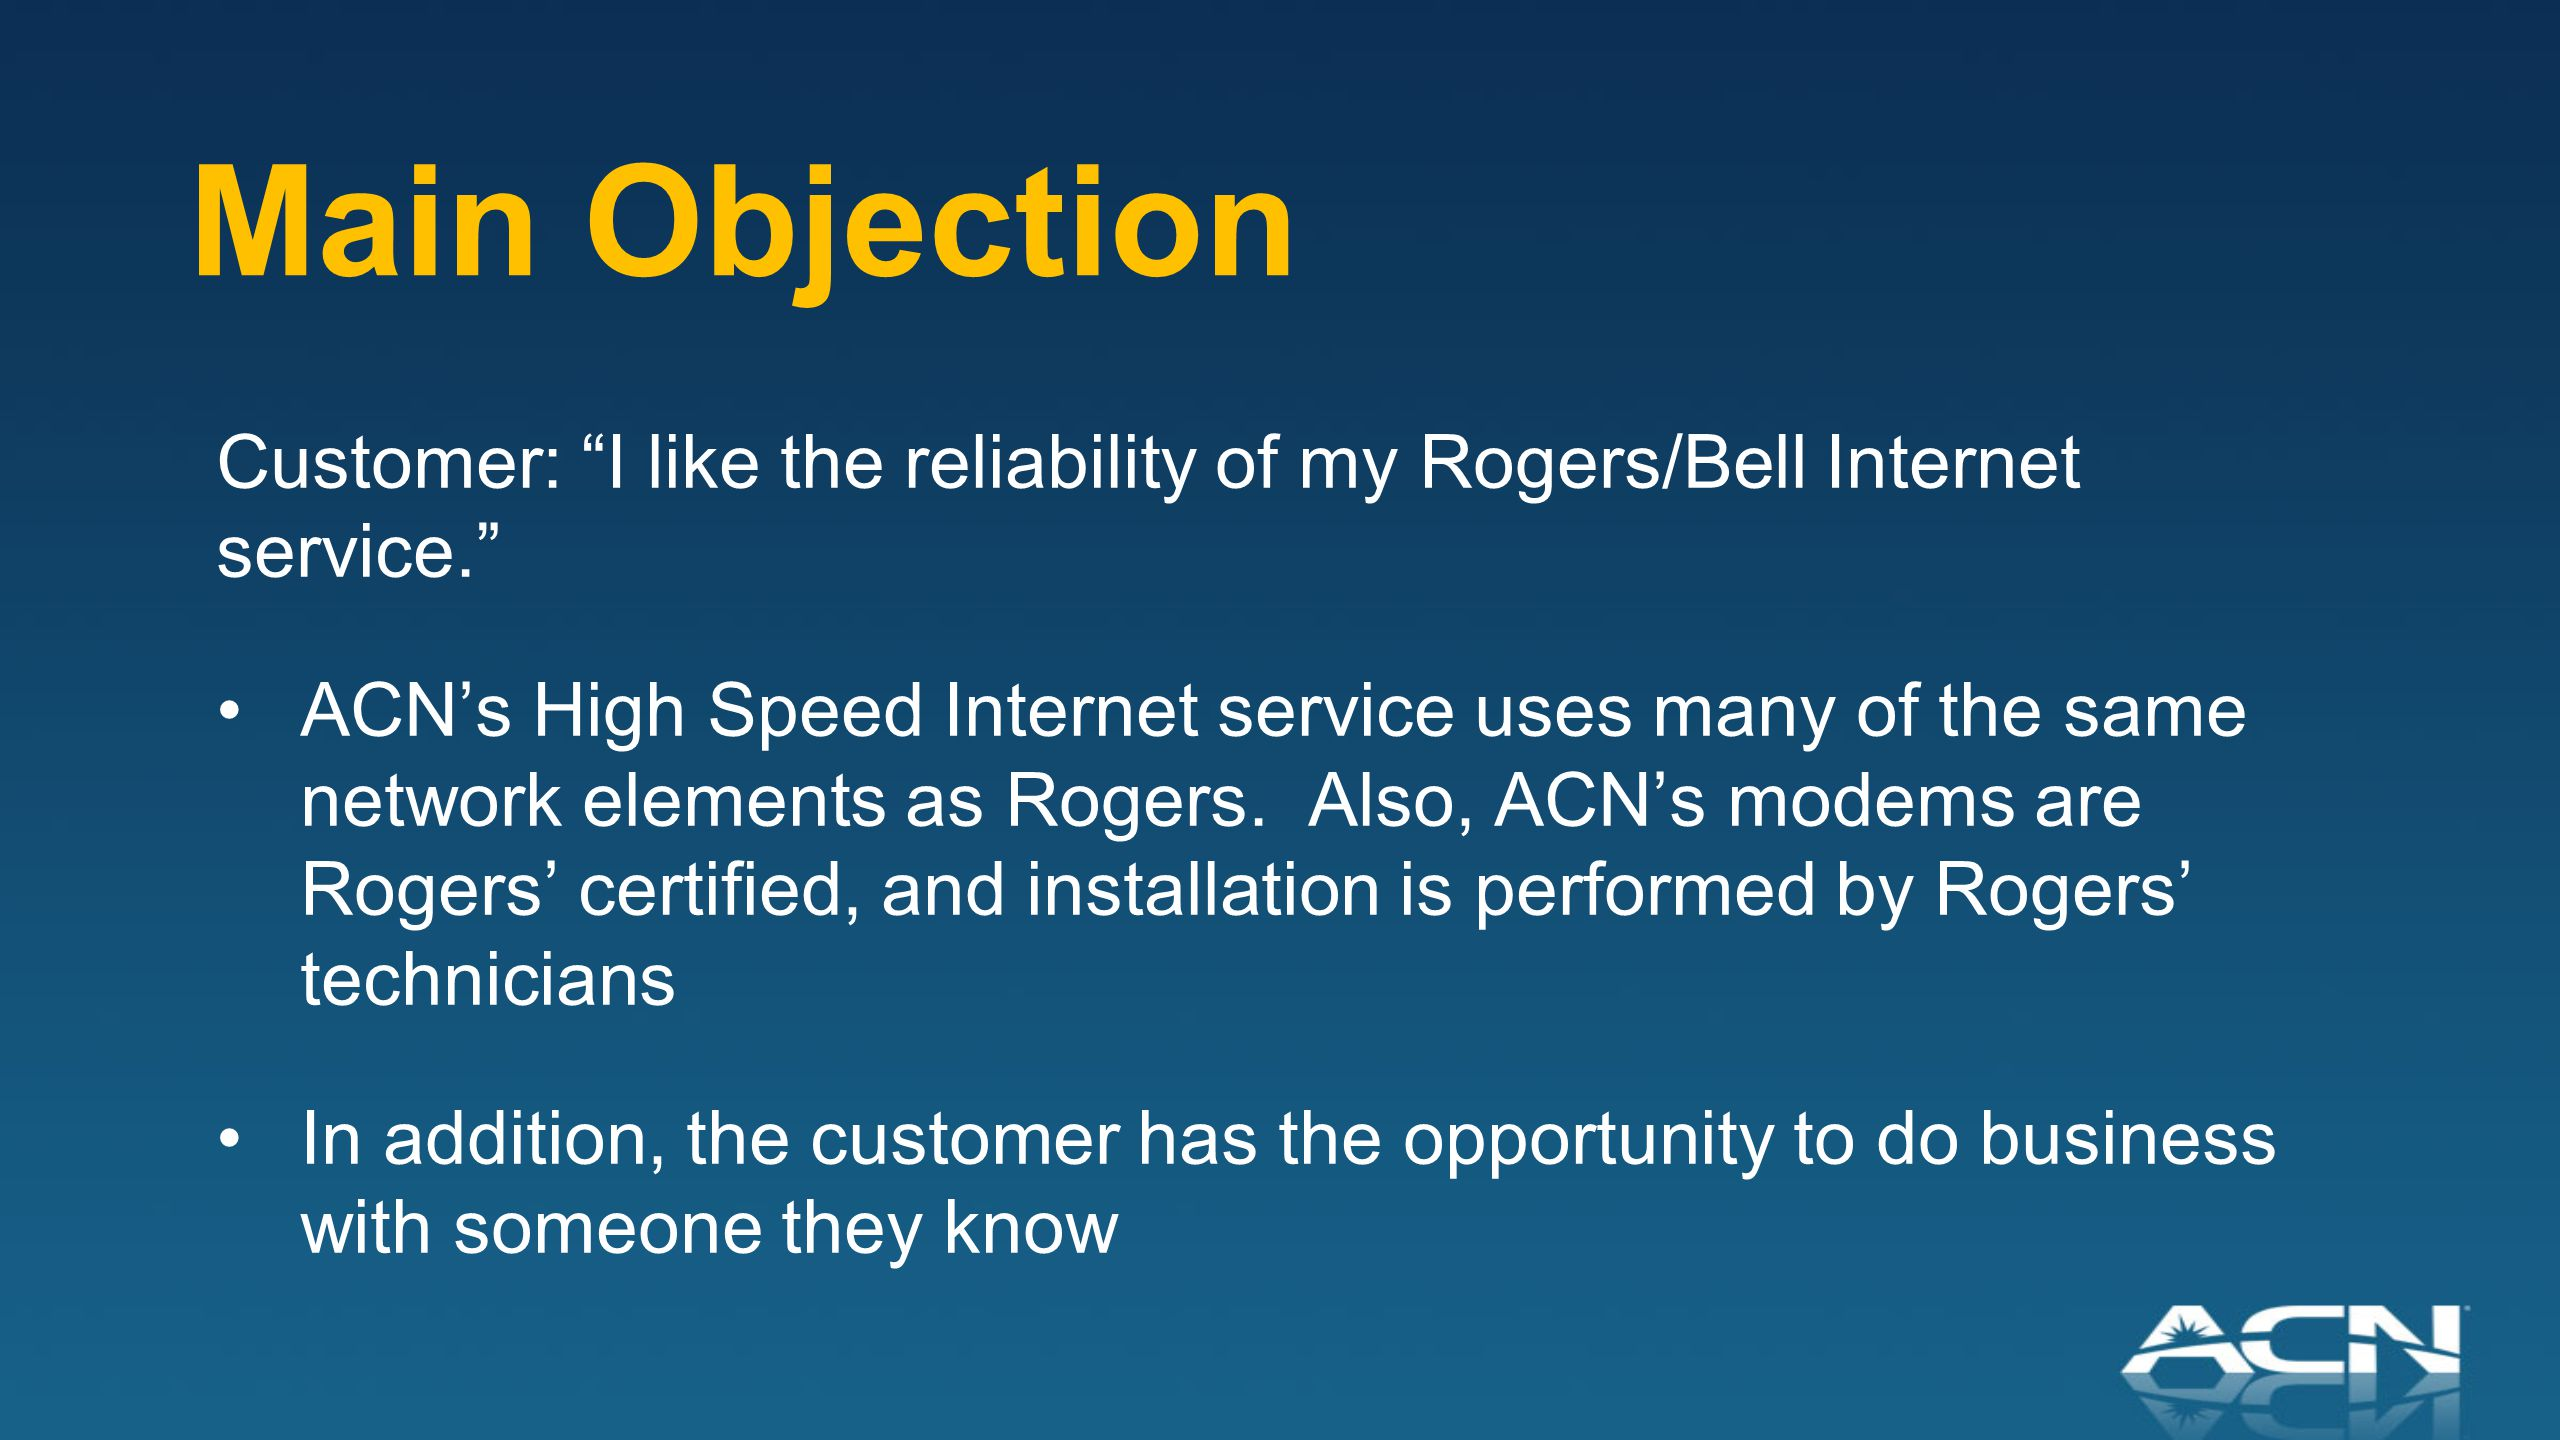 Main Objection Customer: I like the reliability of my Rogers/Bell Internet service. ACN's High Speed Internet service uses many of the same network elements as Rogers.